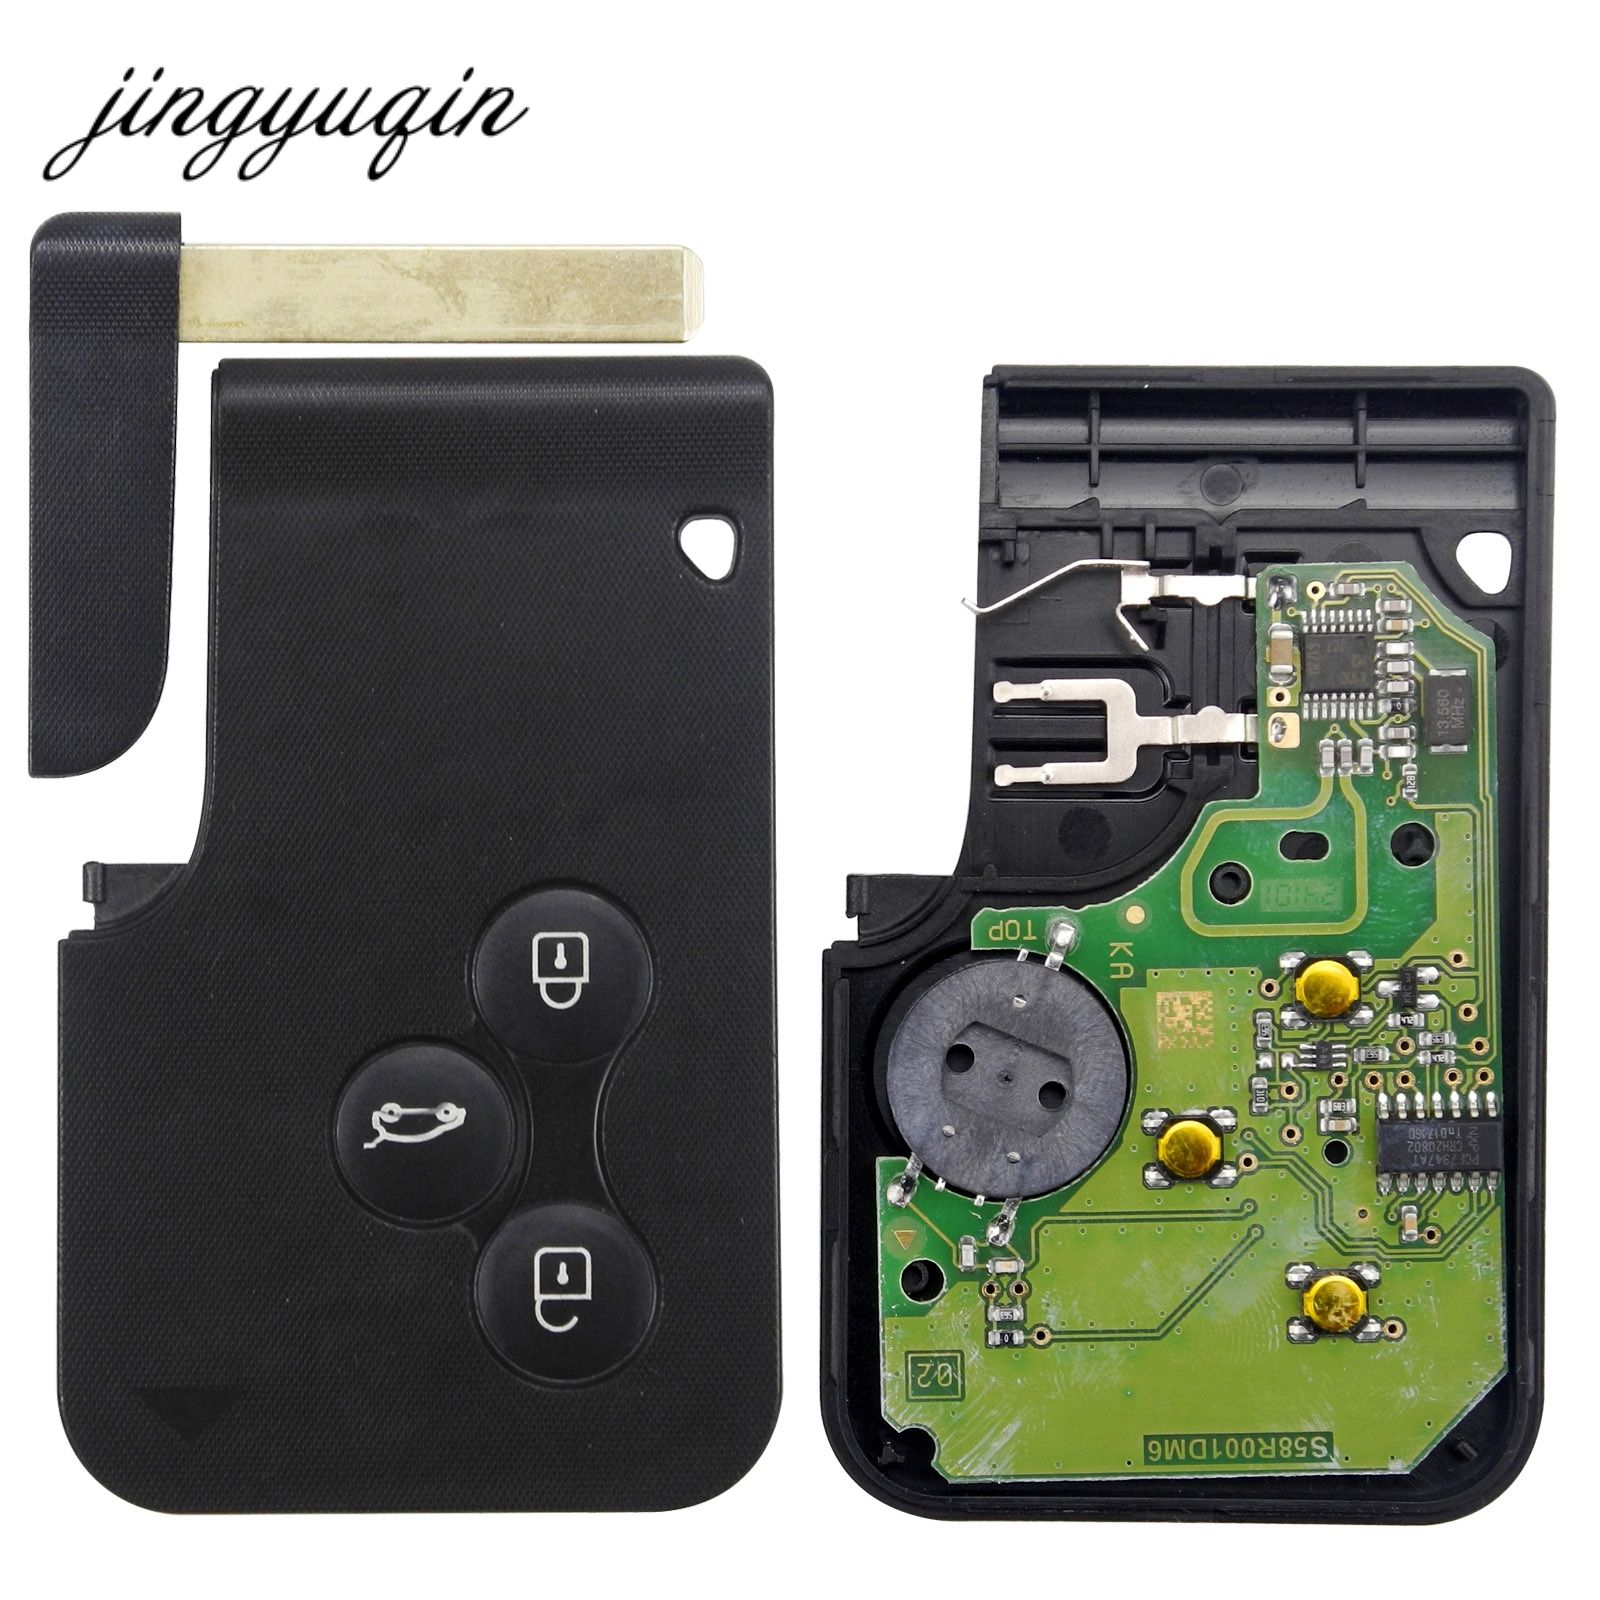 jingyuqin Smart Key Card for <font><b>Renault</b></font> Megane II Scenic II Grand Scenic 2003-2008 433mhz PCF7947 Chip ID46 3 Button Remote PCB